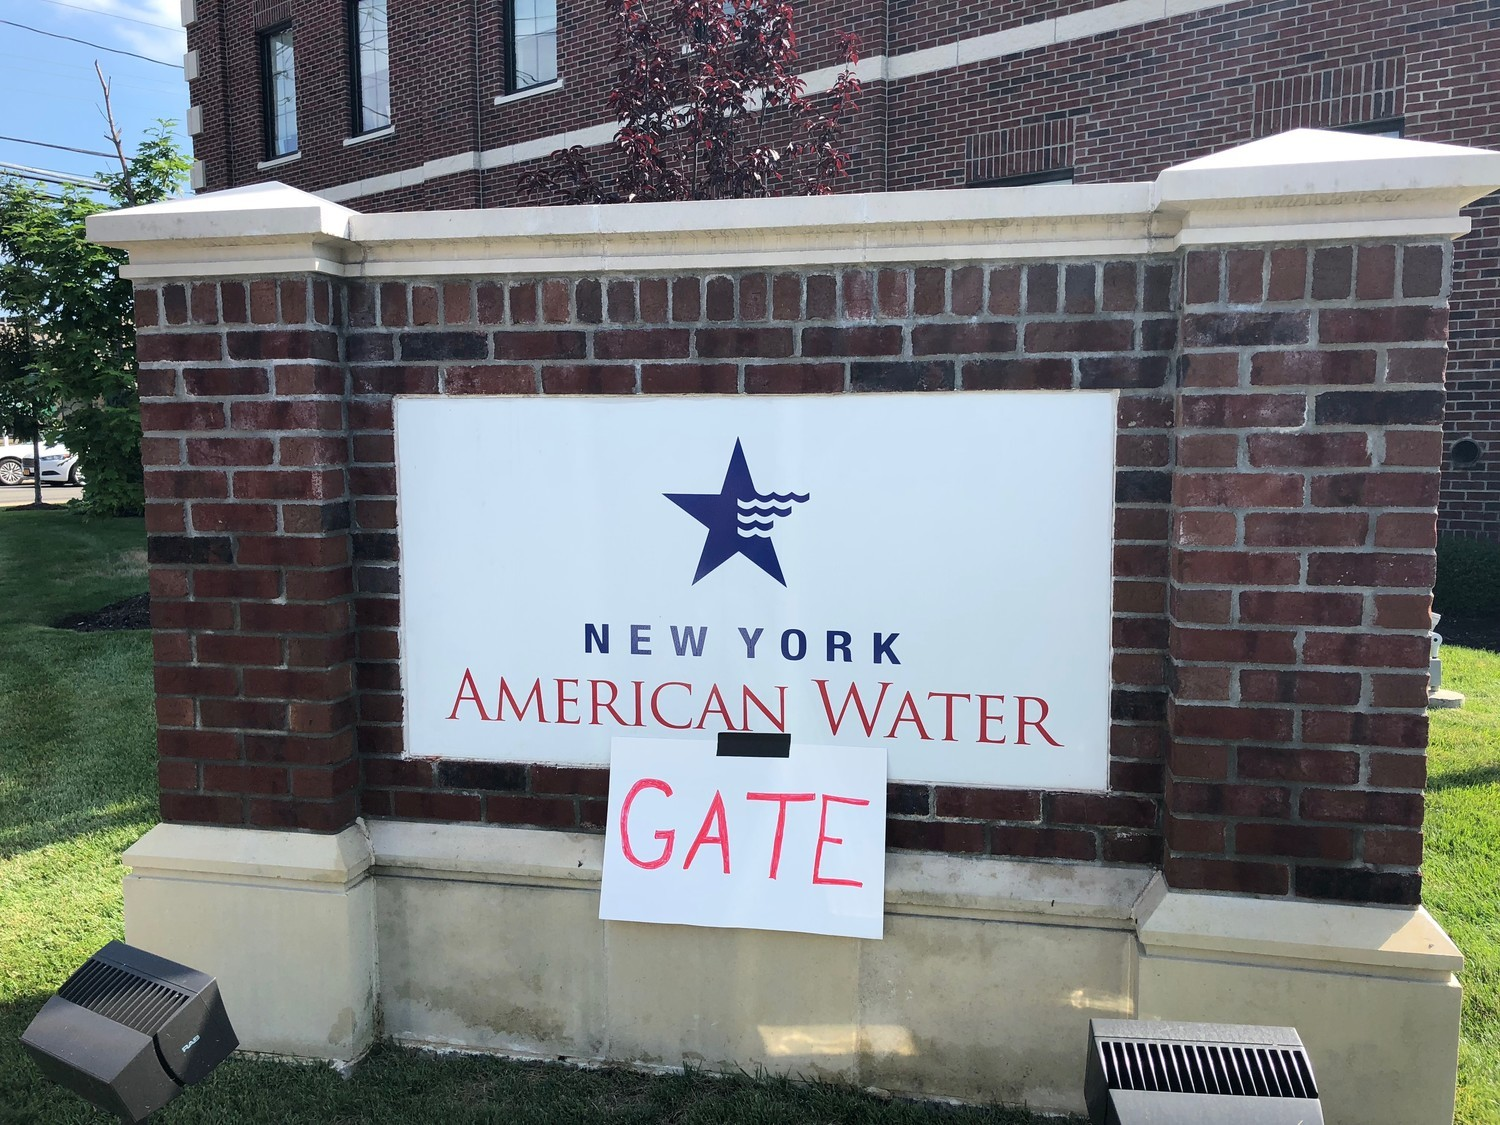 A New York American Water rate hike is set to go into effect on April 1.